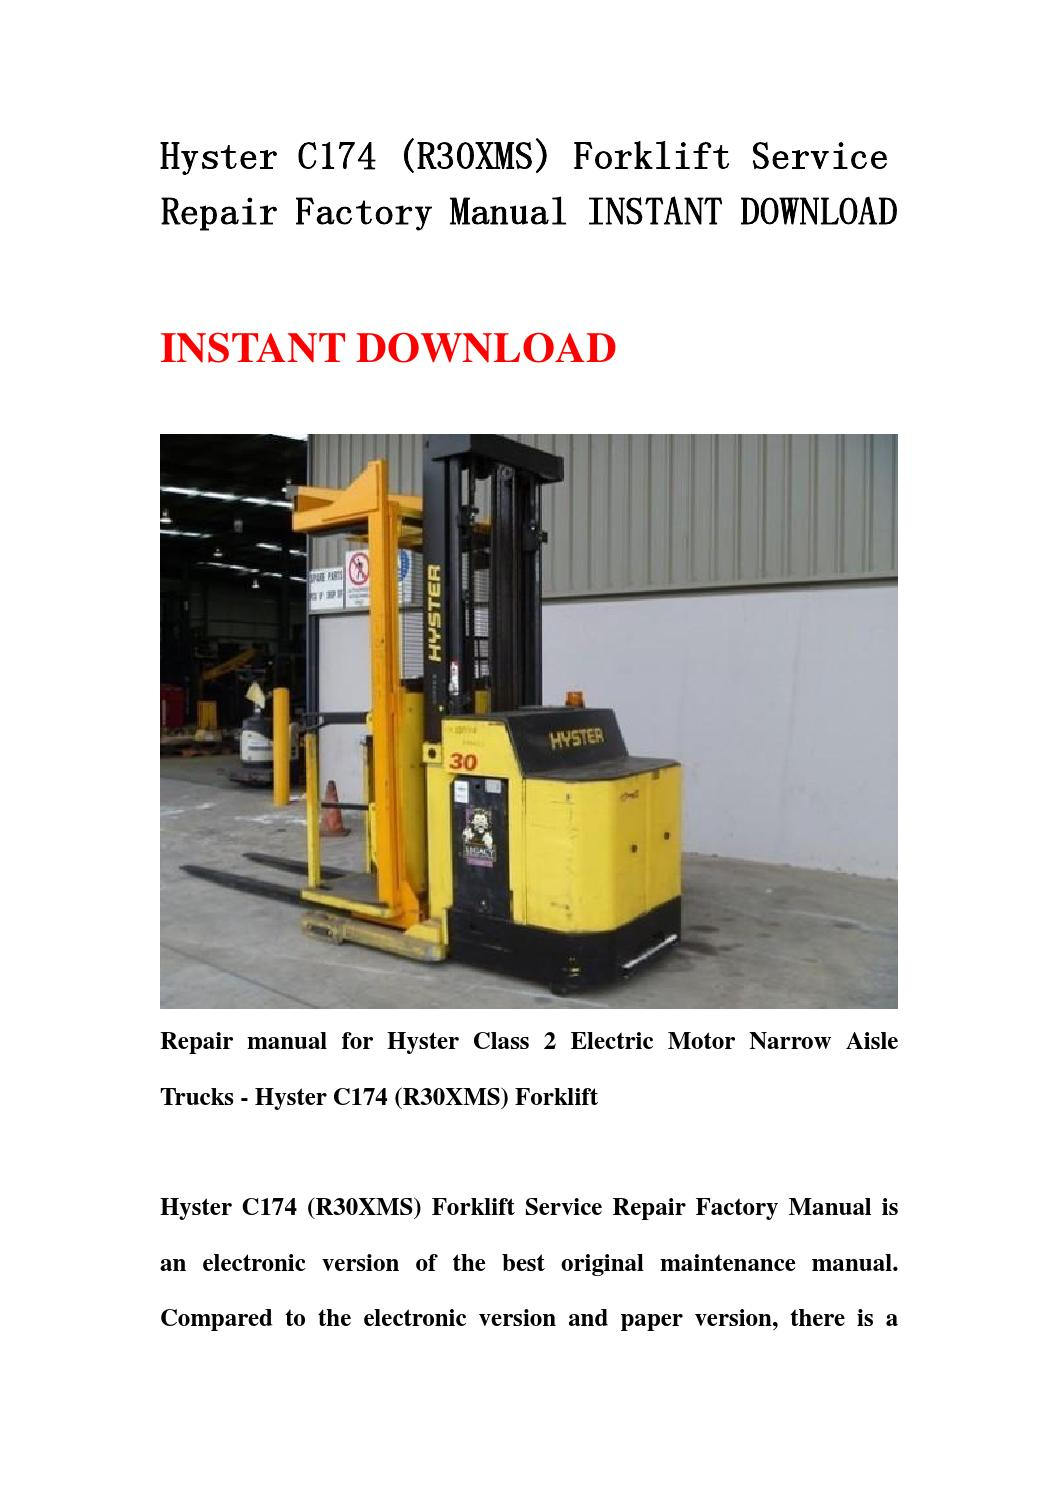 Hyster C174  R30xms  Forklift Service Repair Factory